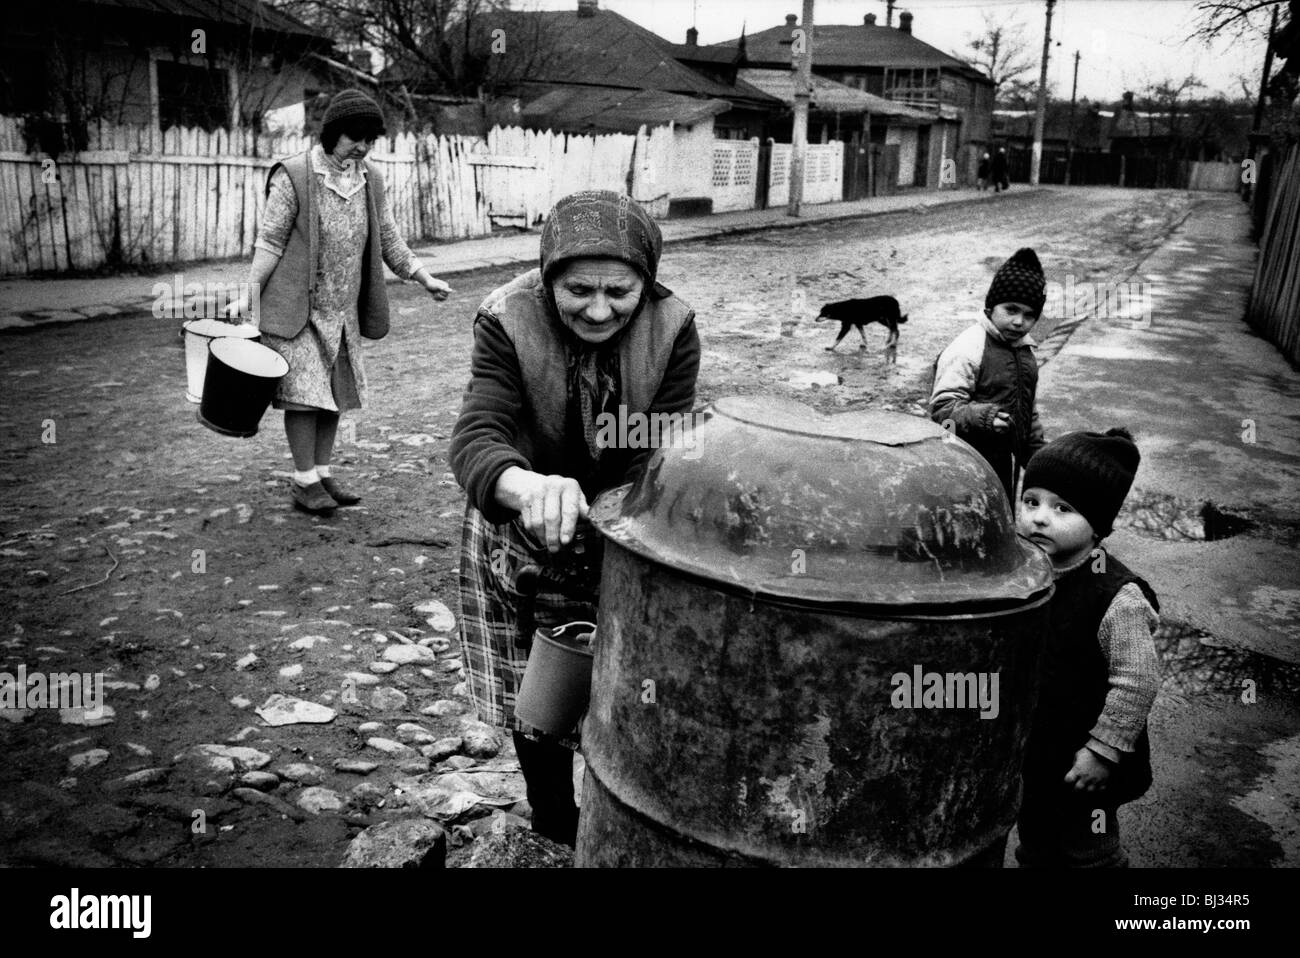 Women collect water in Bucharest suburb, Romania. Feb 1990 - Stock Image